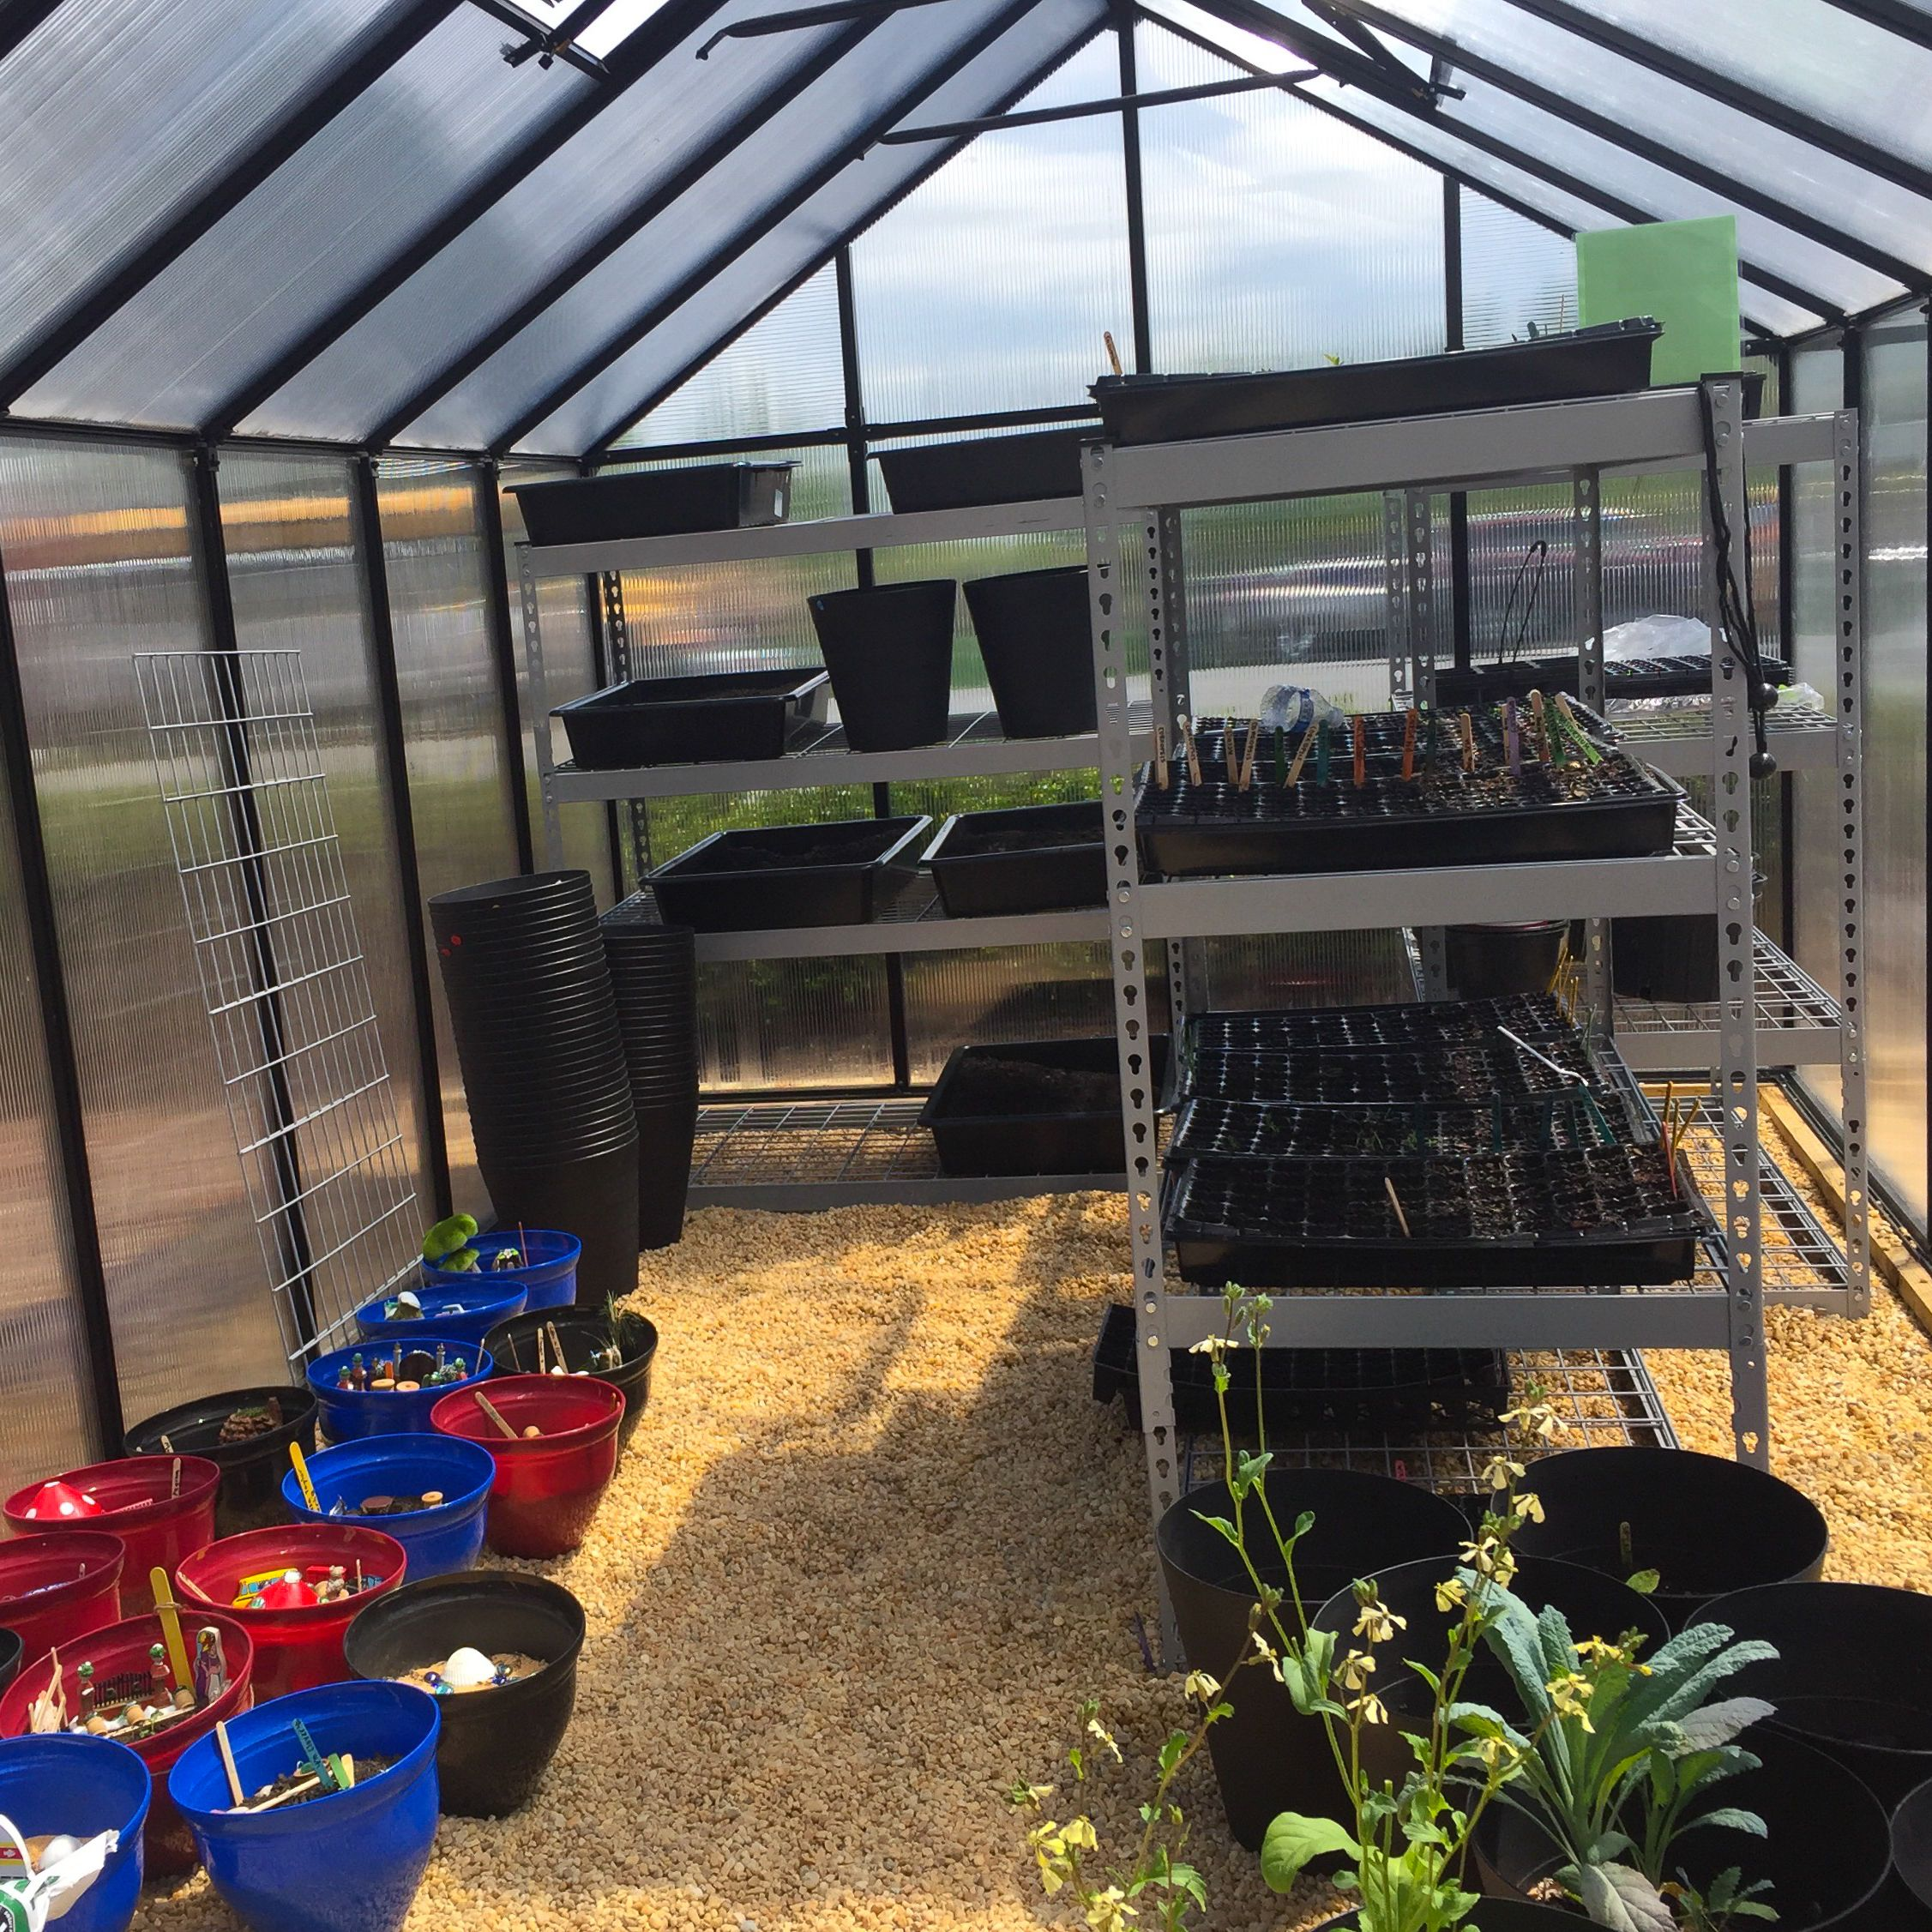 Many science experiments and gardening projects get their start in greenhouse and nearby planting stations, which were built and installed by Barnesville alumni earning Eagle Scout honors.